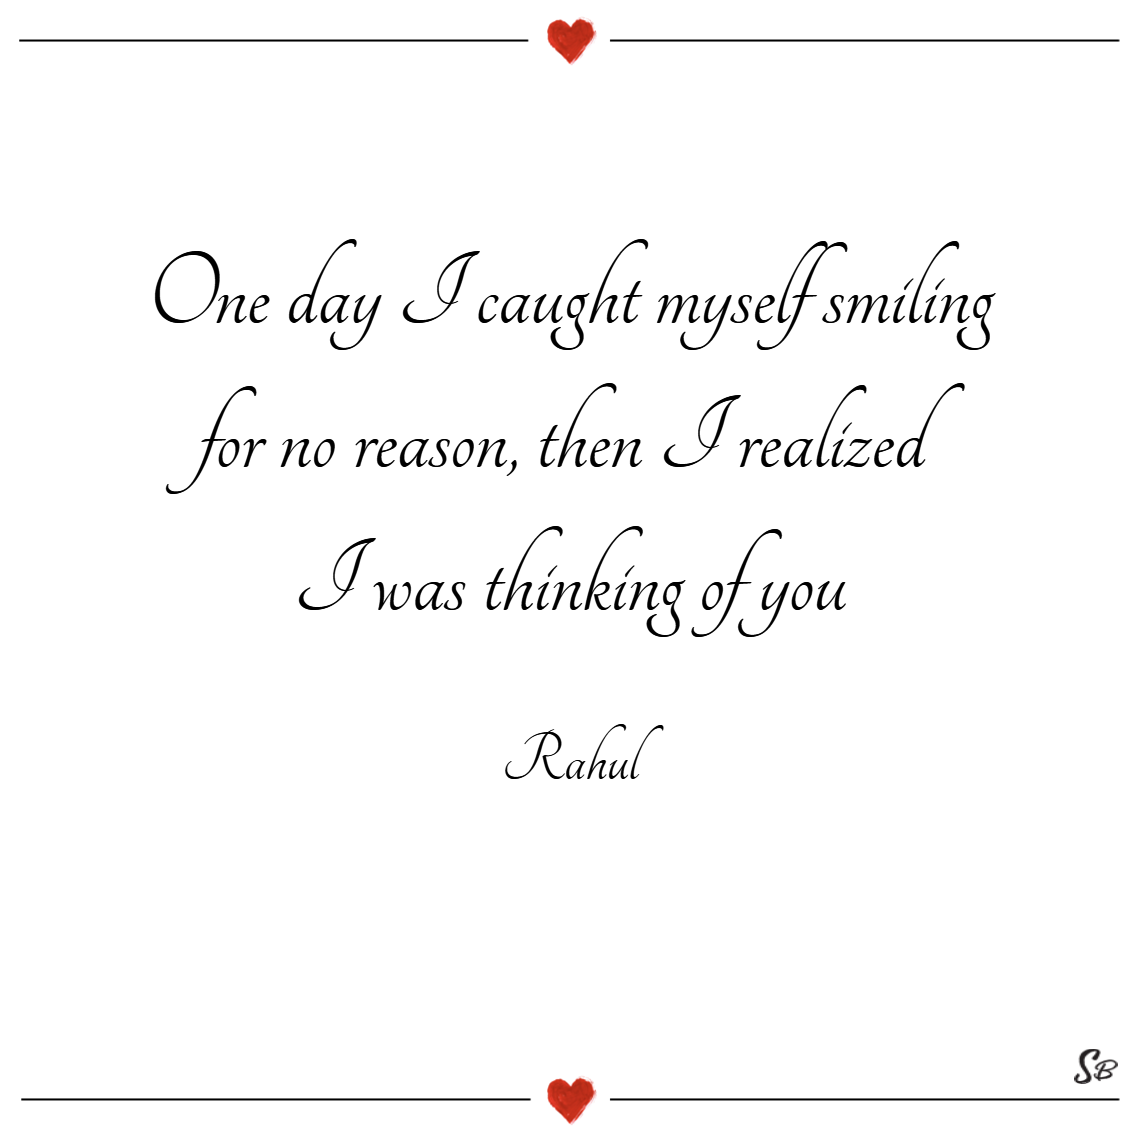 One day i caught myself smiling for no reason, then i realized i was thinking of you. – rahul